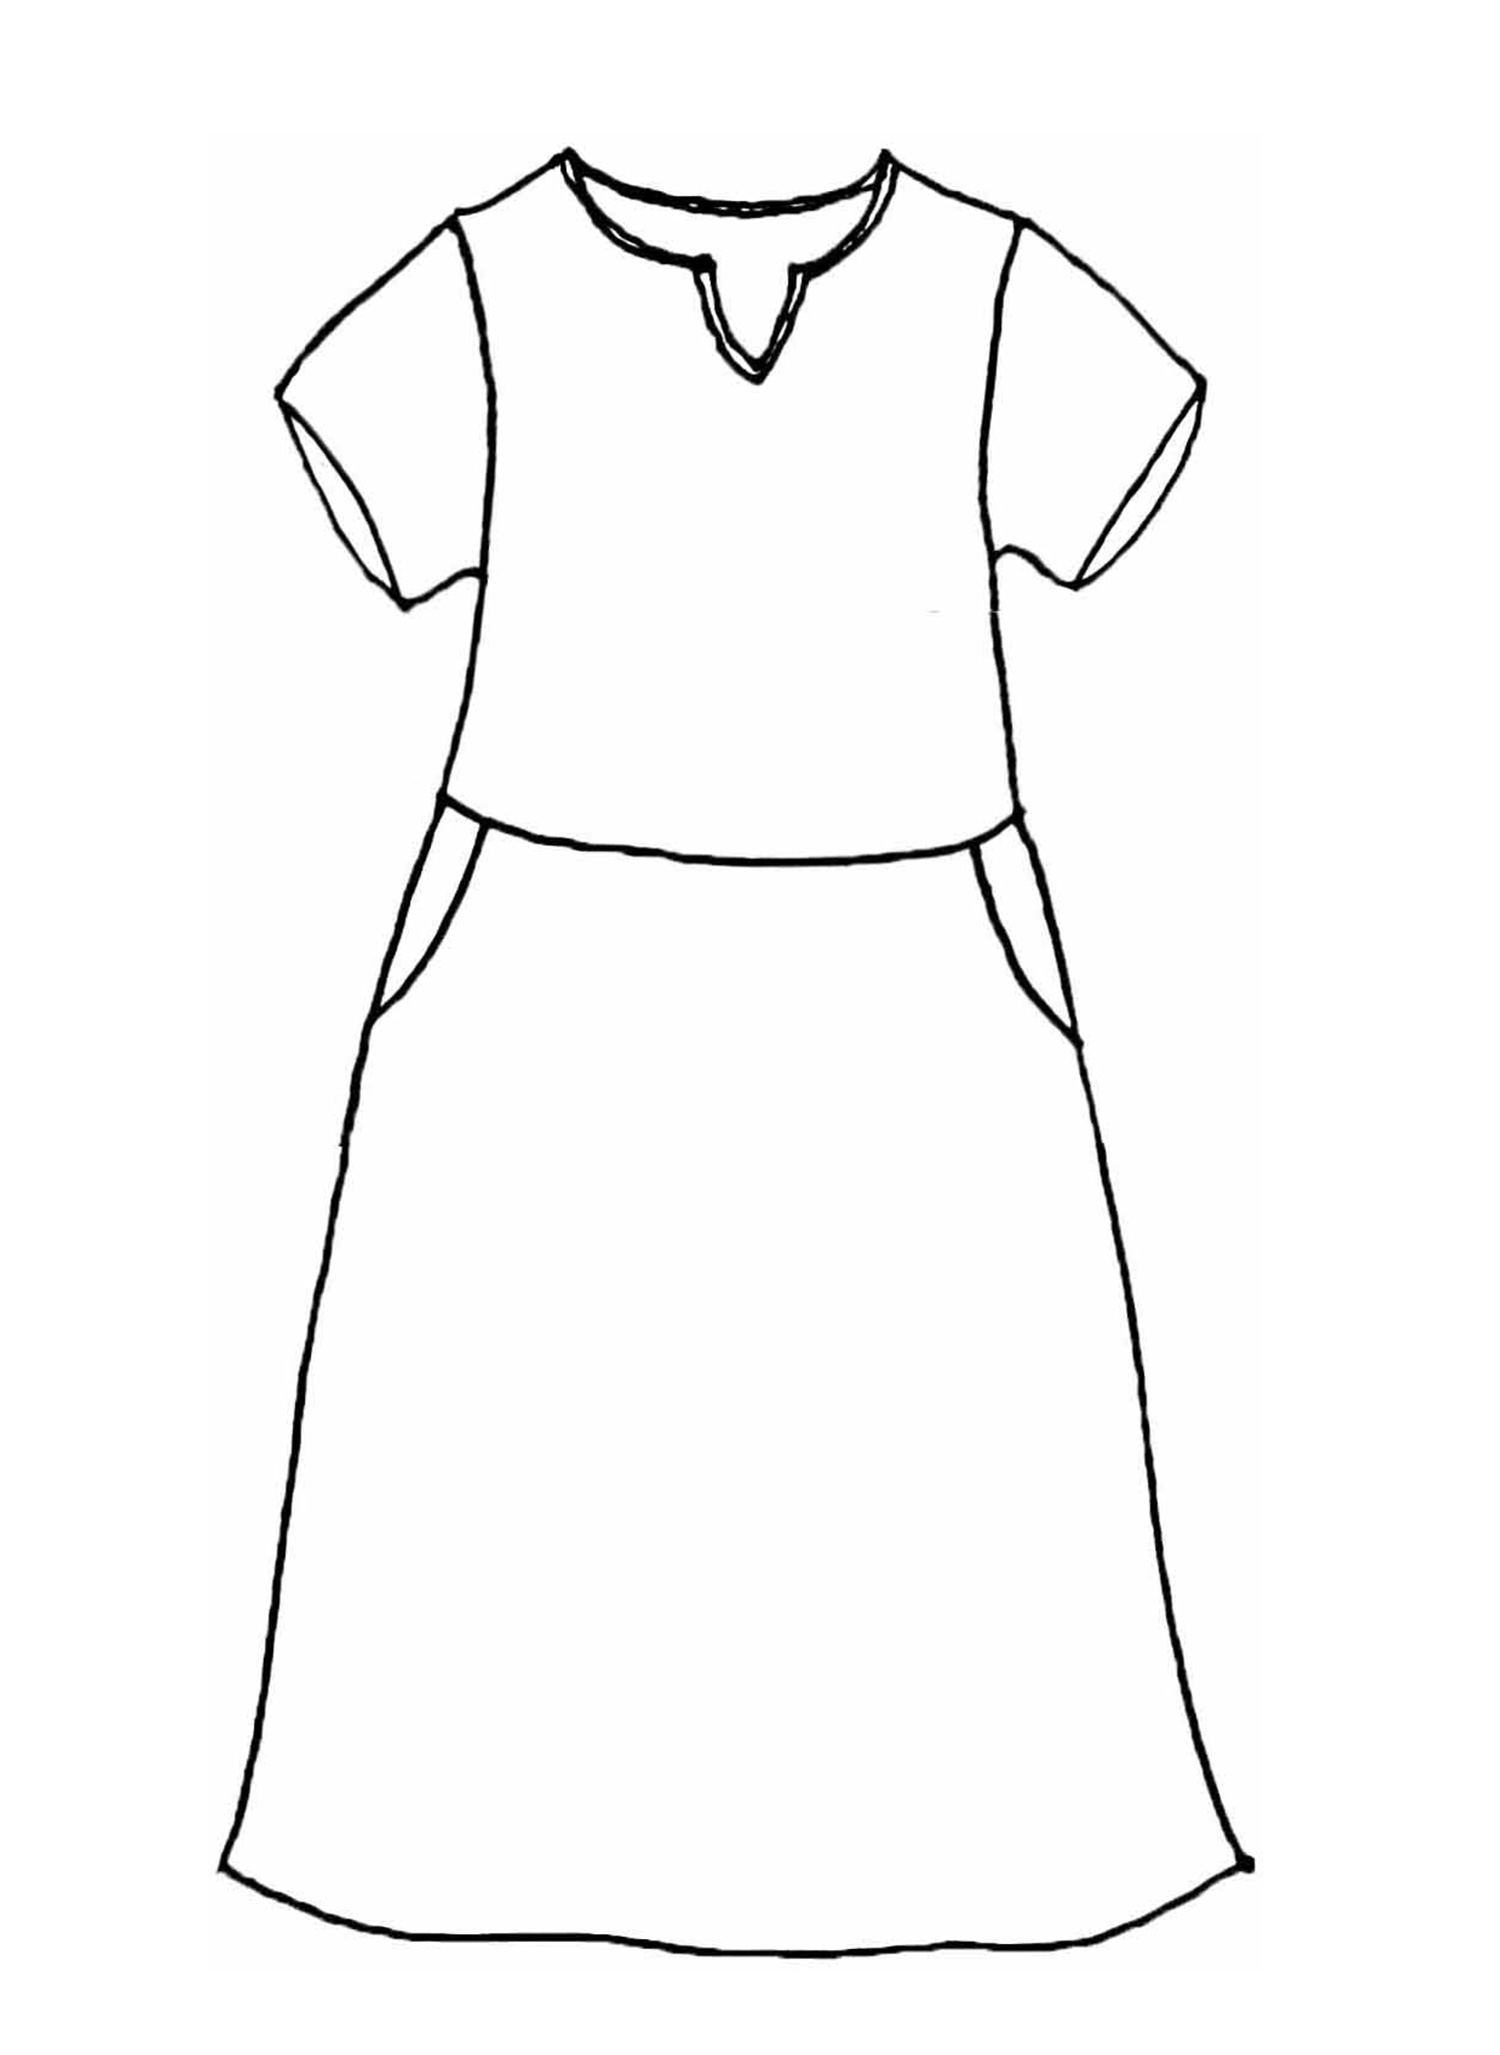 Renewed Dress sketch image